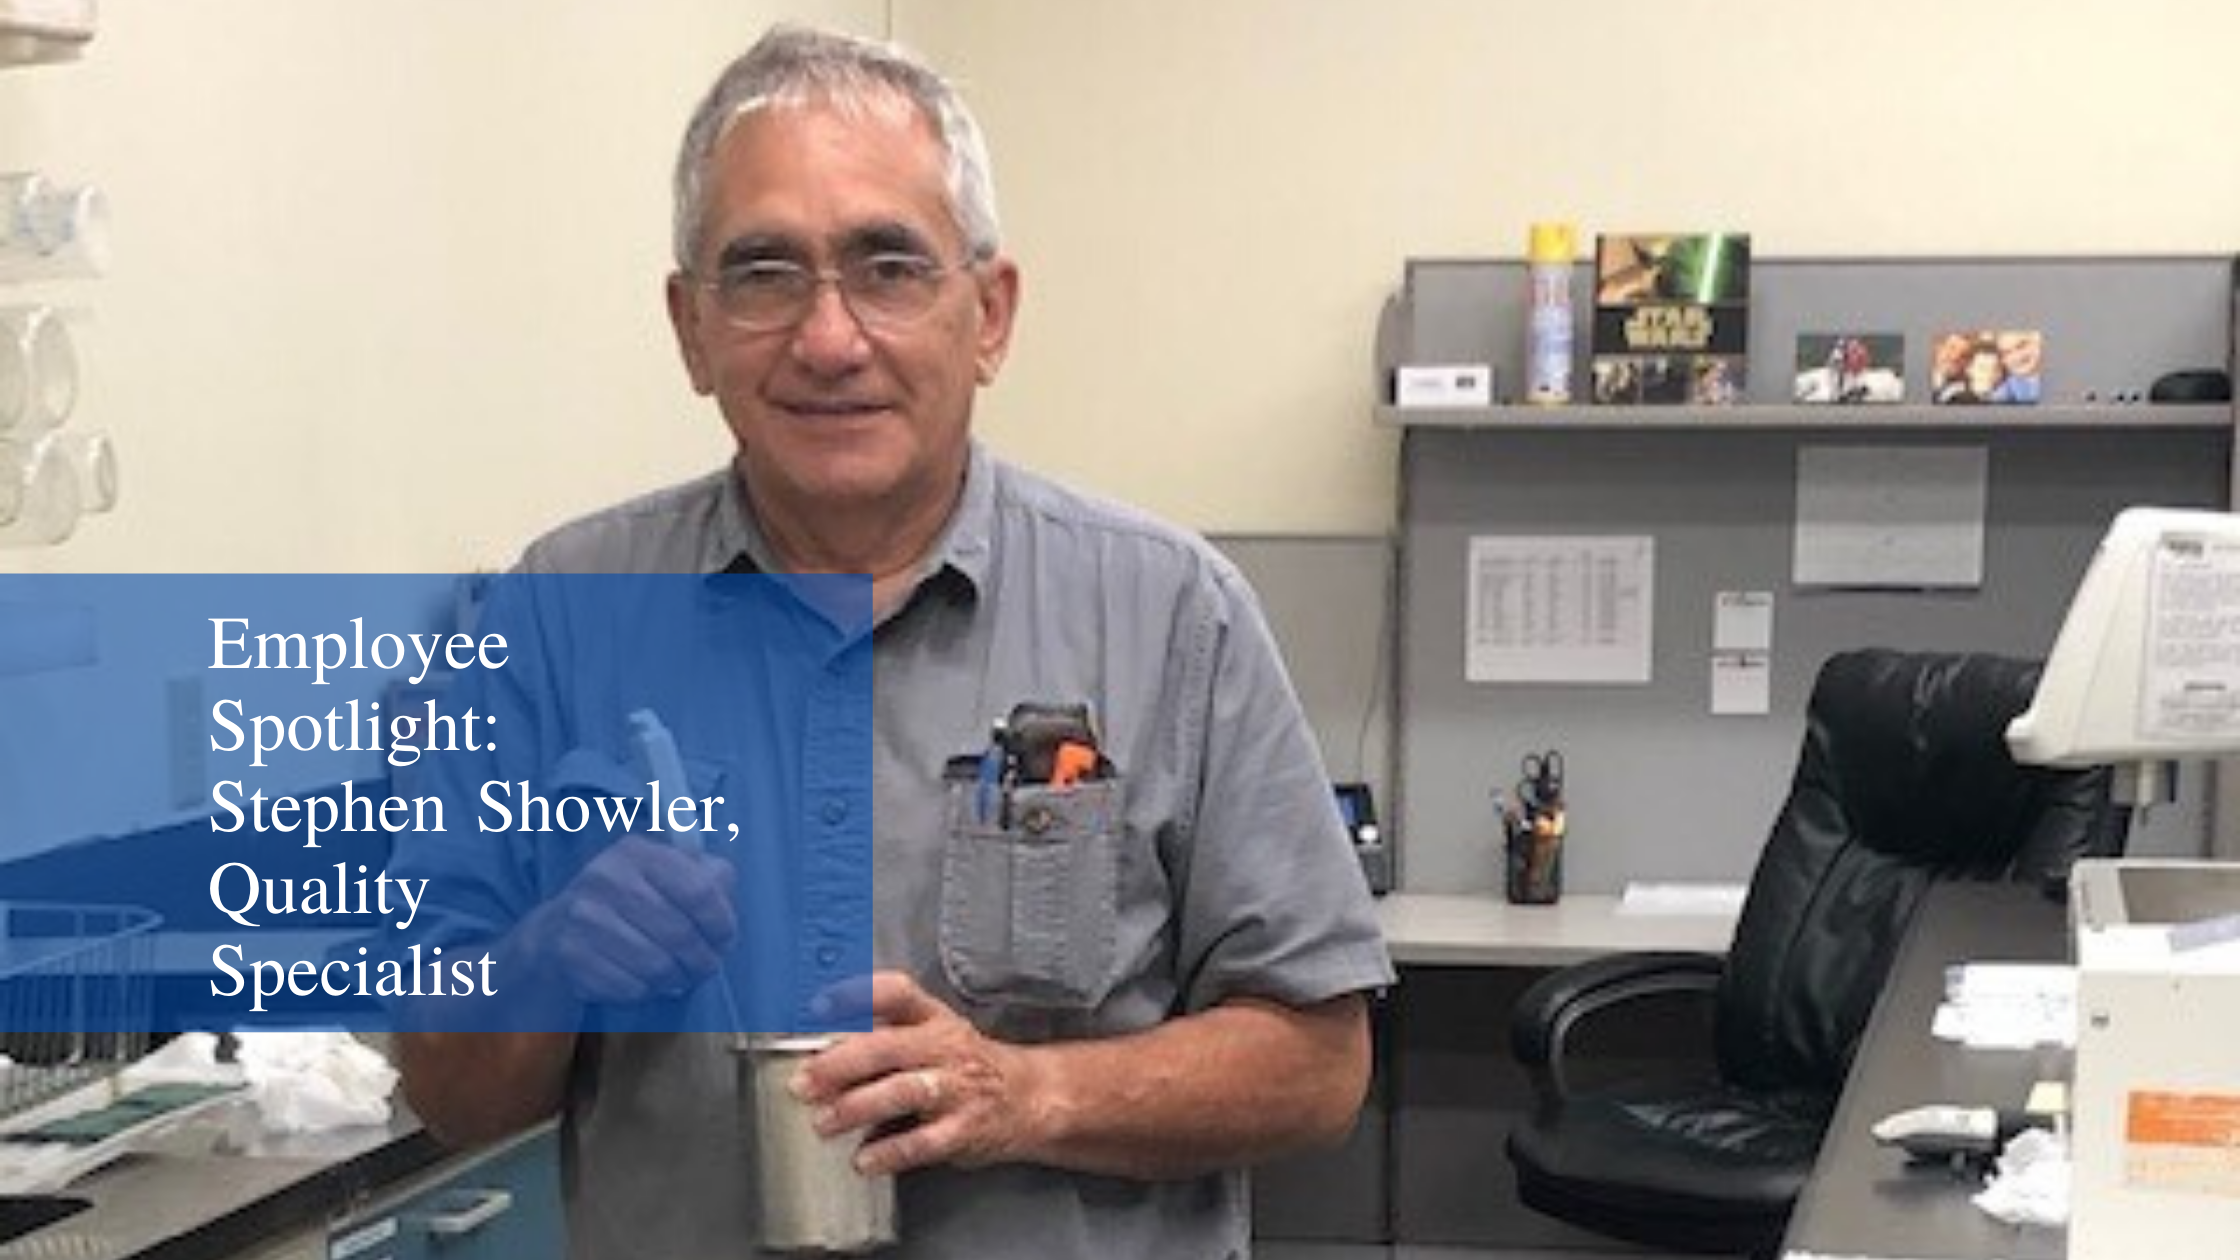 Employee Spotlight: Stephen Showler, Quality Specialist